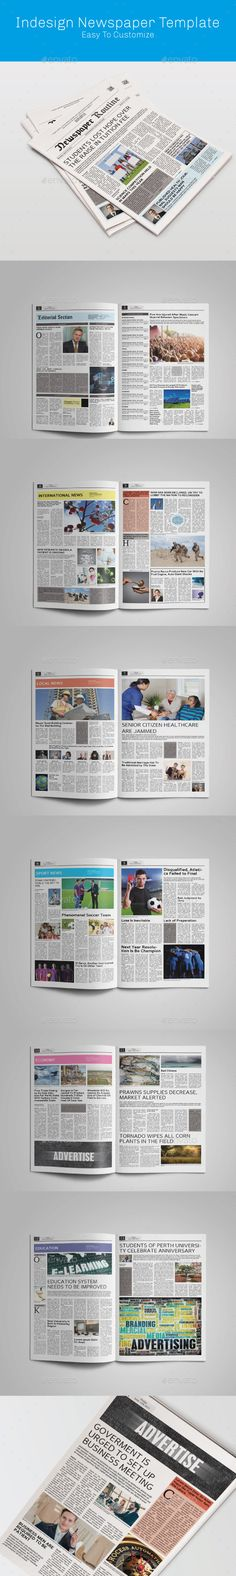 Newspaper Template For Adobe Indesign Cs  Free Newspaper